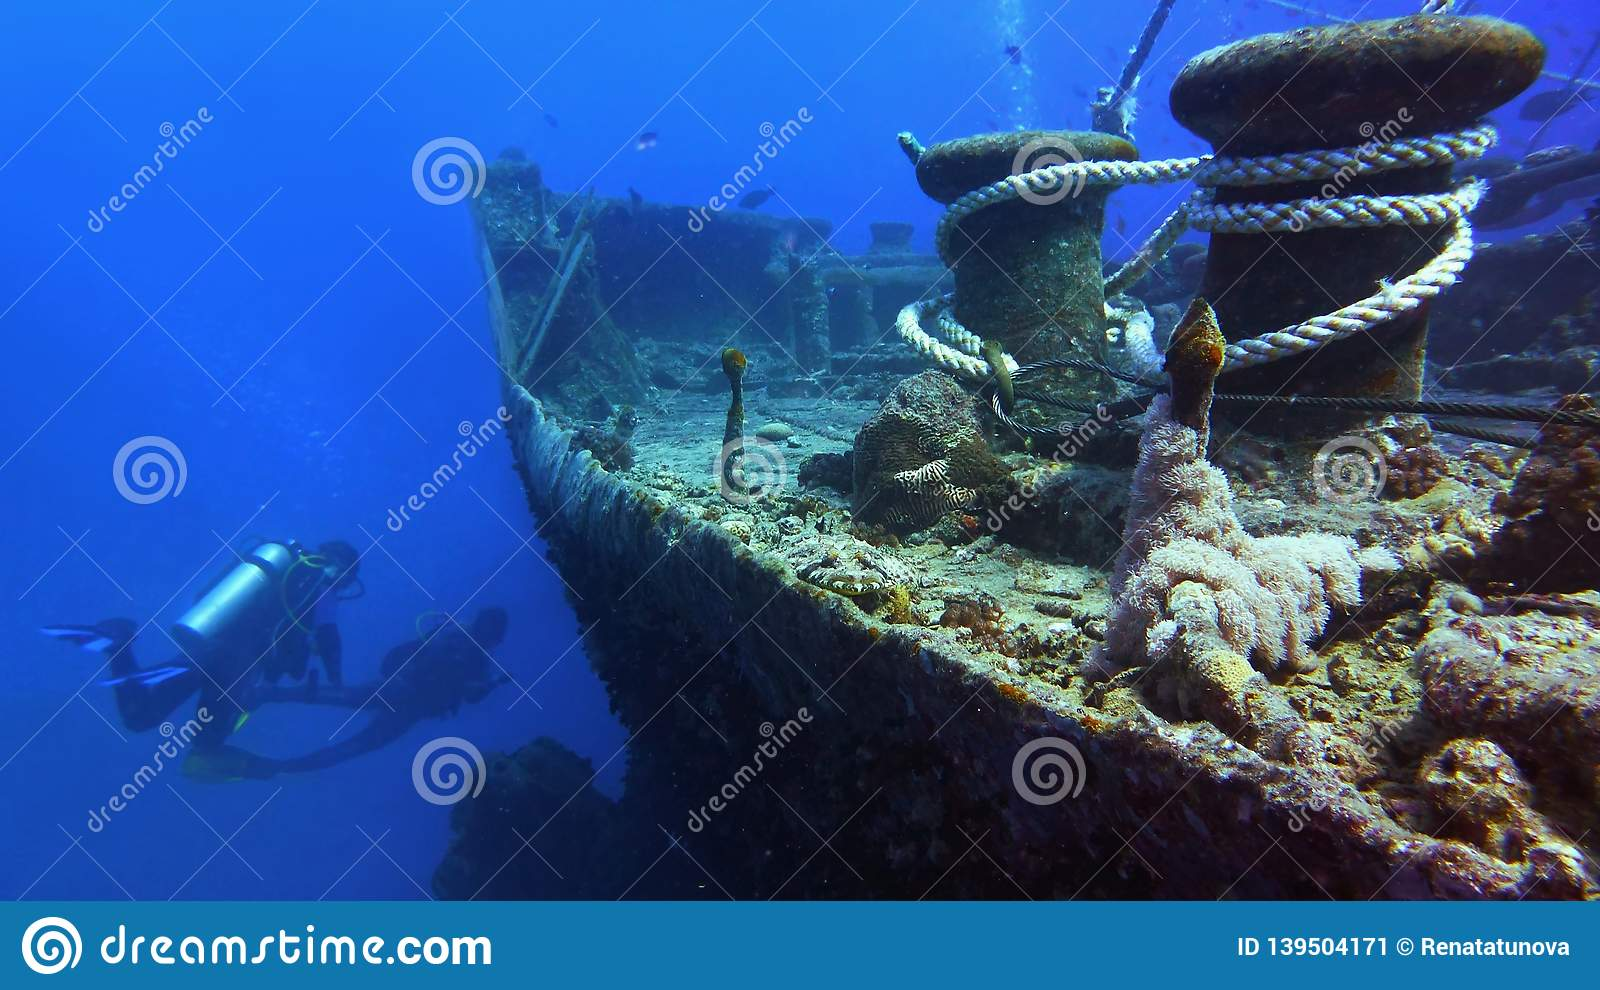 Shipwreck Thistlegorm and scuba divers on the background